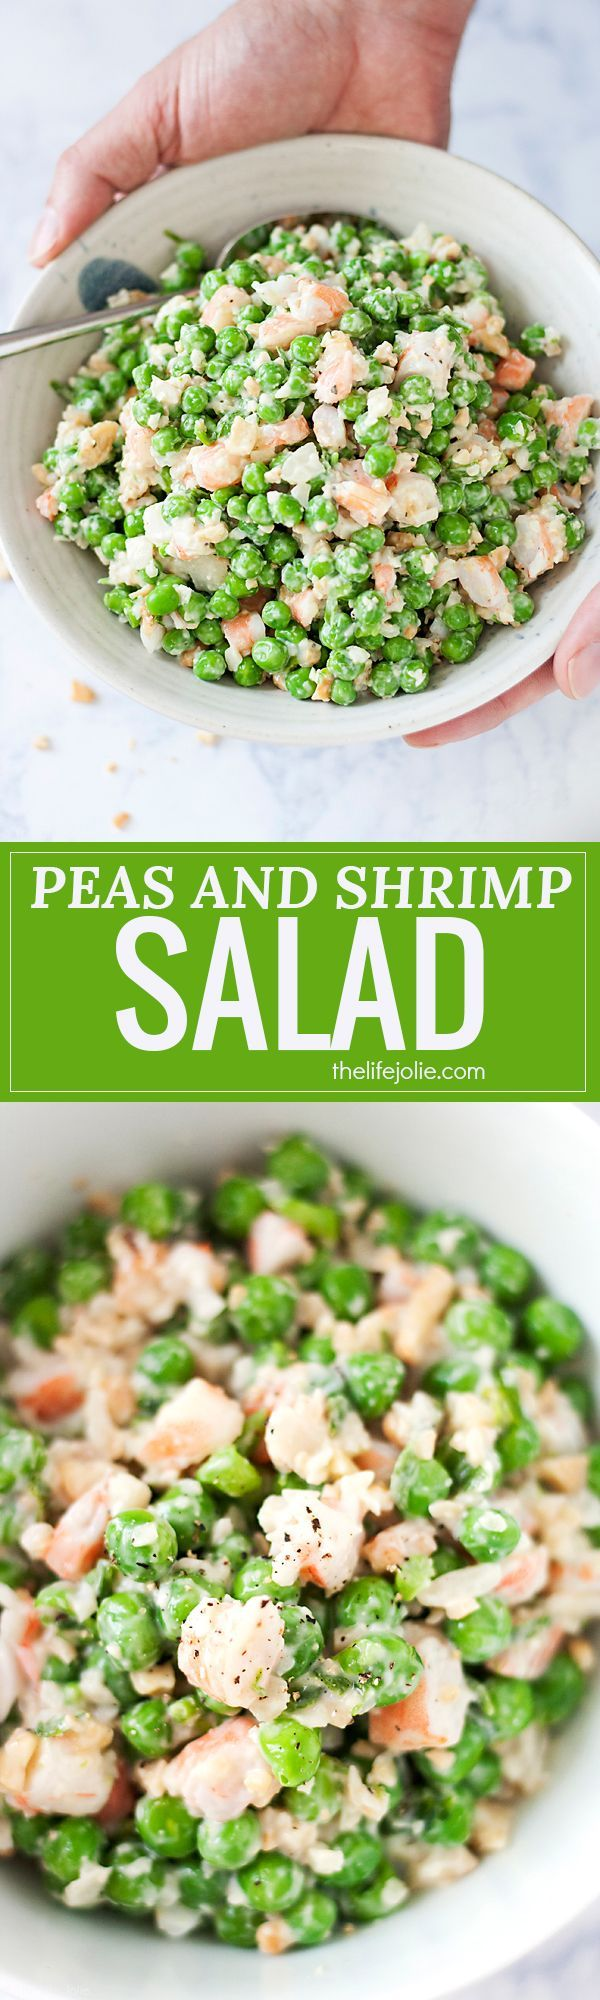 Best 25 cold pea salad ideas on pinterest recipe for for Easy cold side dishes for christmas